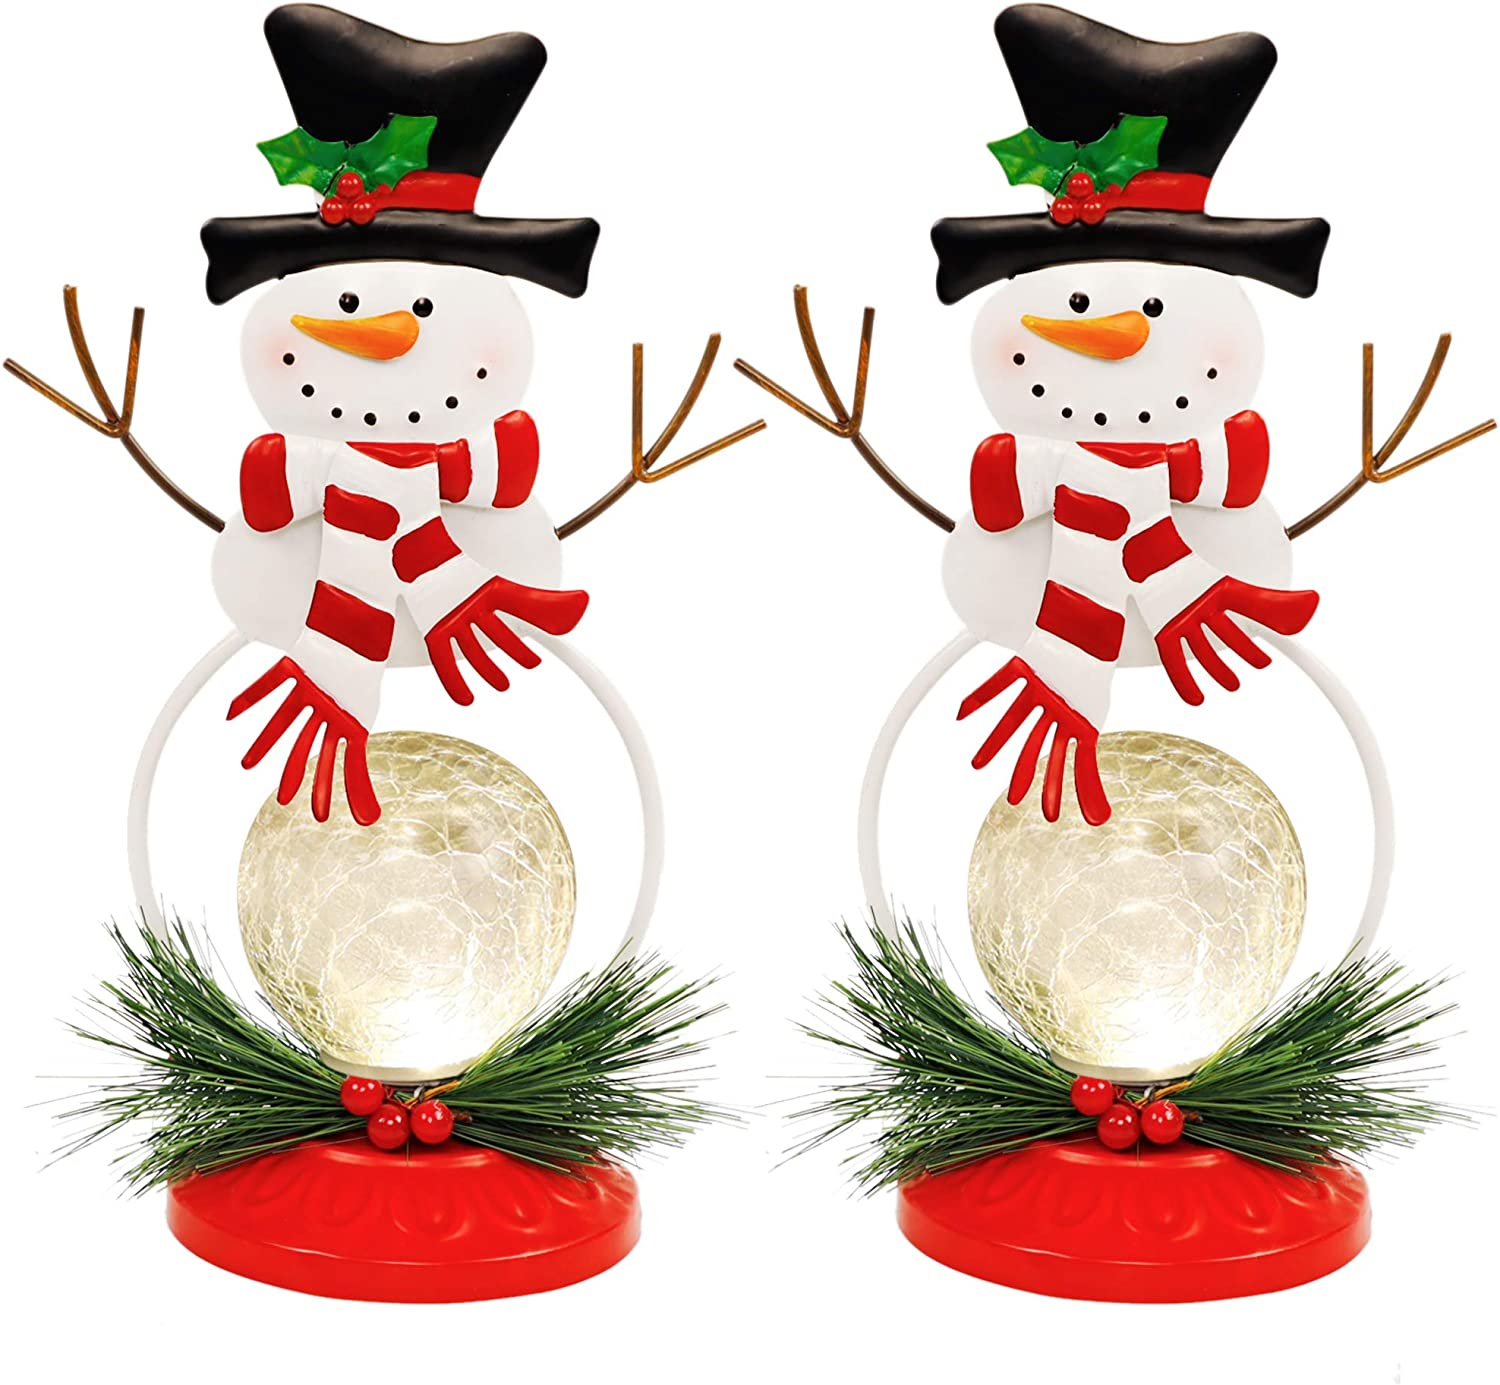 Lulu Home Lighted Christmas Table Decorations, 2 Pack 11.2 Inch Christmas Snowman Ornaments with Lighted Glass Ball, Battery Operated Lighted Snowman Decorations, Xmas Holiday Winter Tabletop Ornament